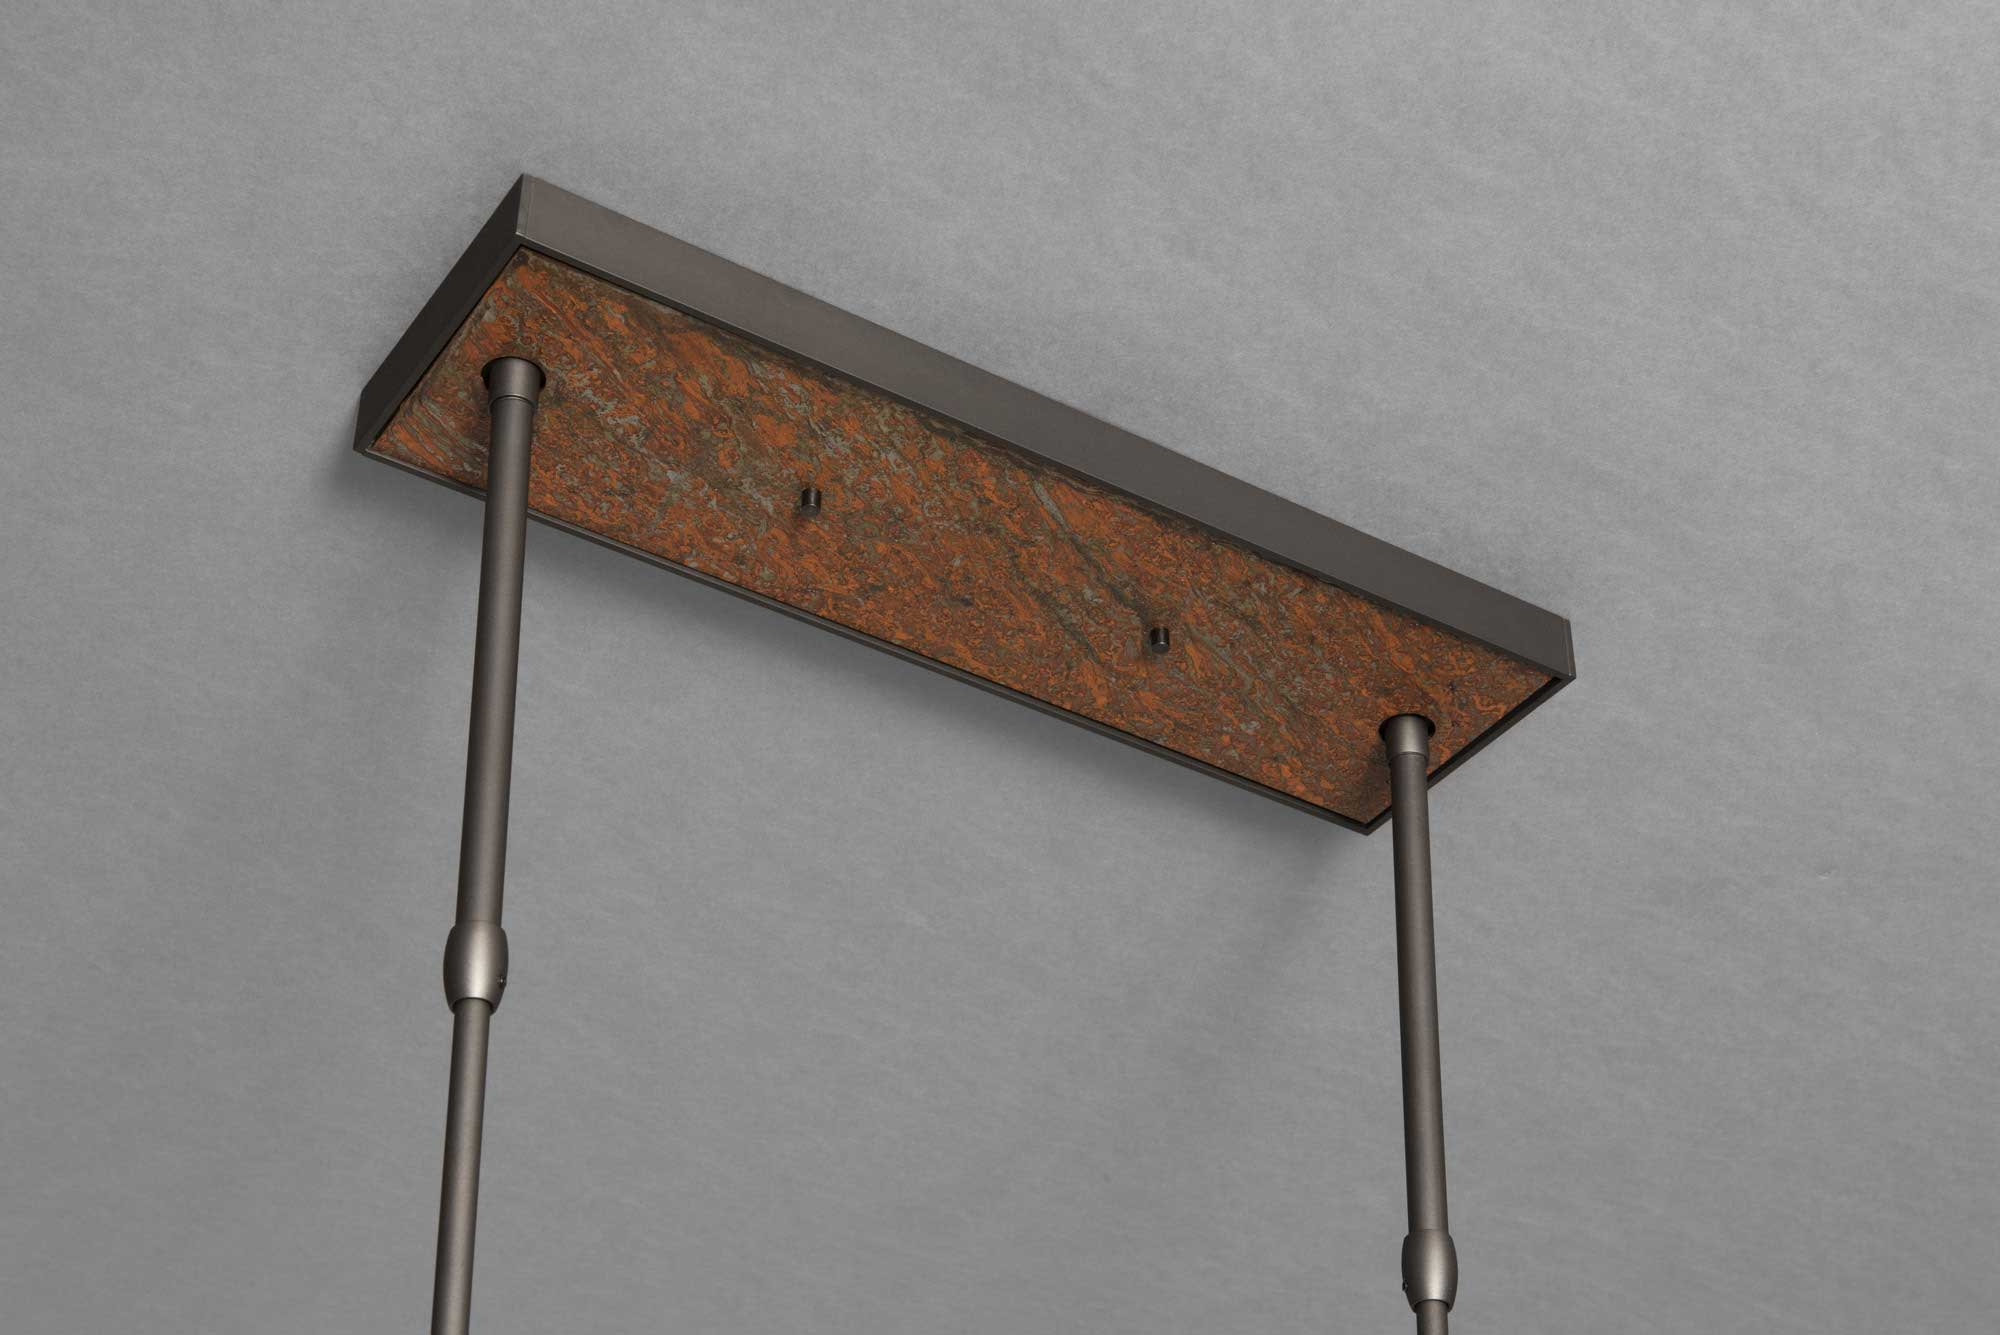 BRUTUS PENDANT CANOPY IN DARK ASH AND RUST FINISH